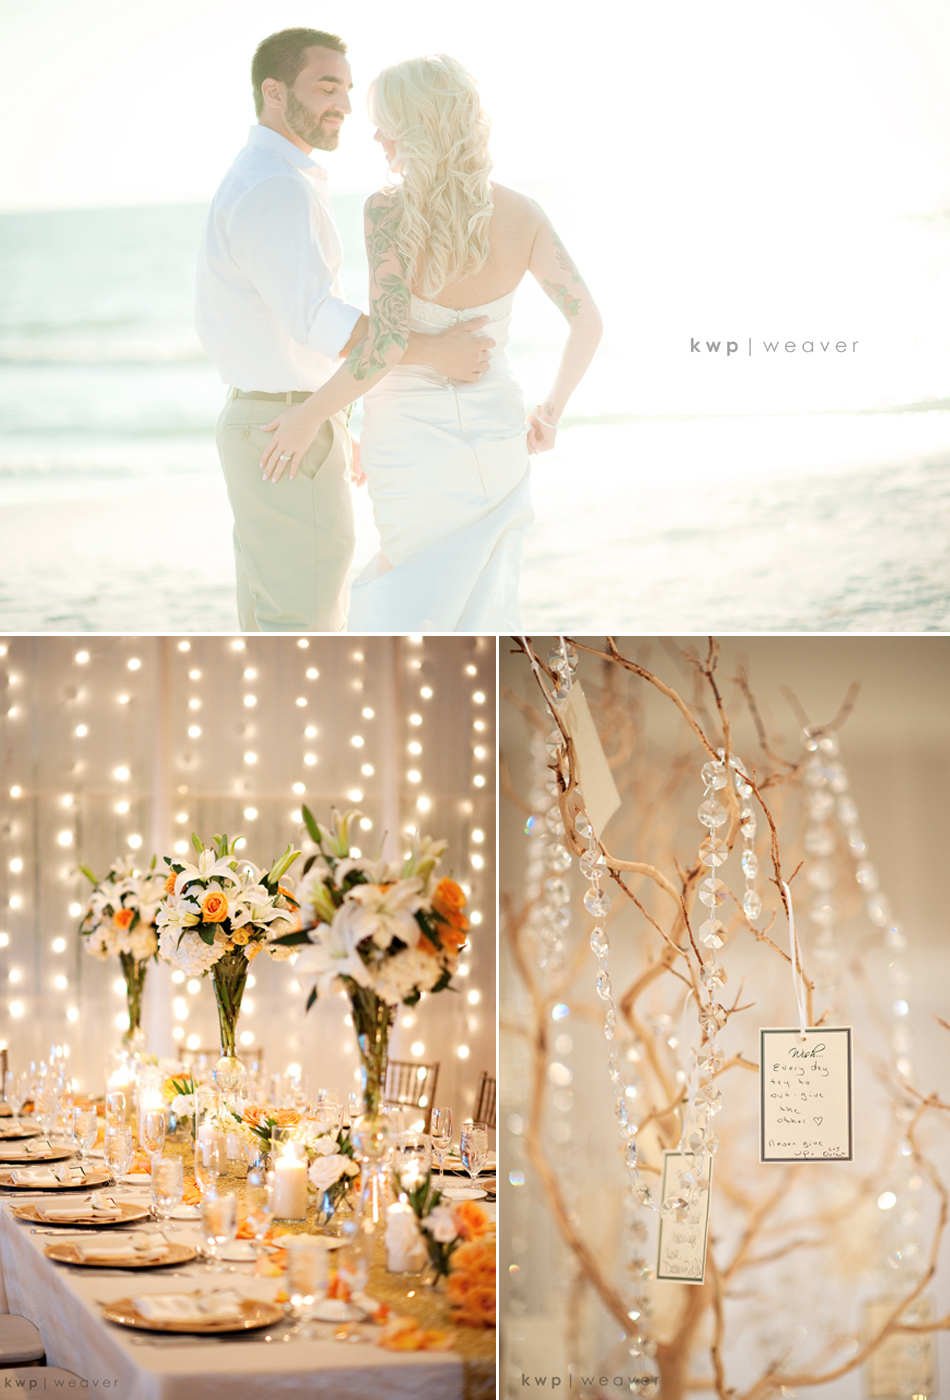 ... elegant-beach-wedding-decor-  sc 1 st  Wedding & Wedding World: Beach Wedding Decor